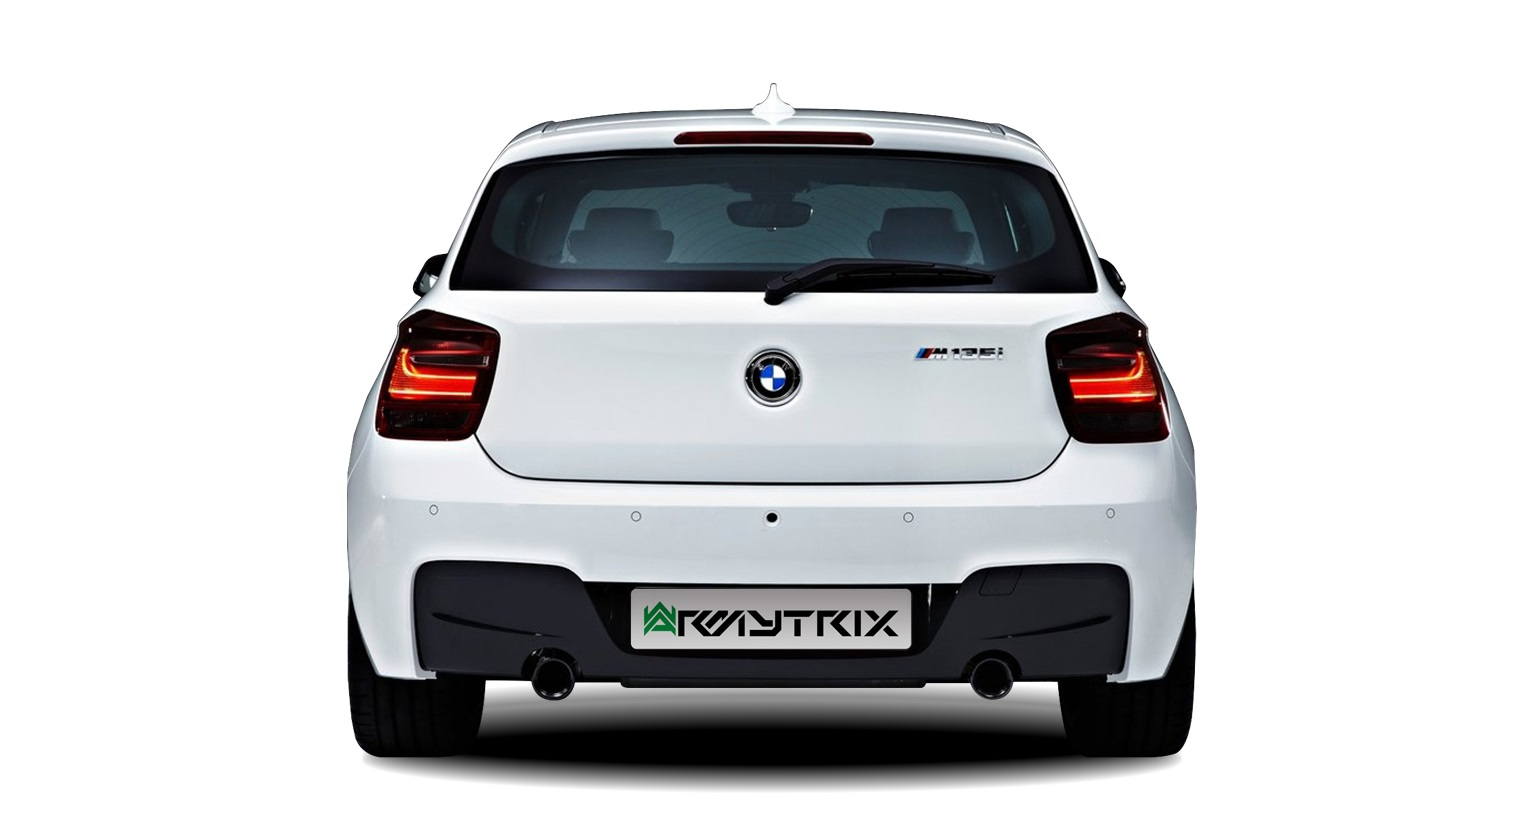 1 Series hatchback (F20)